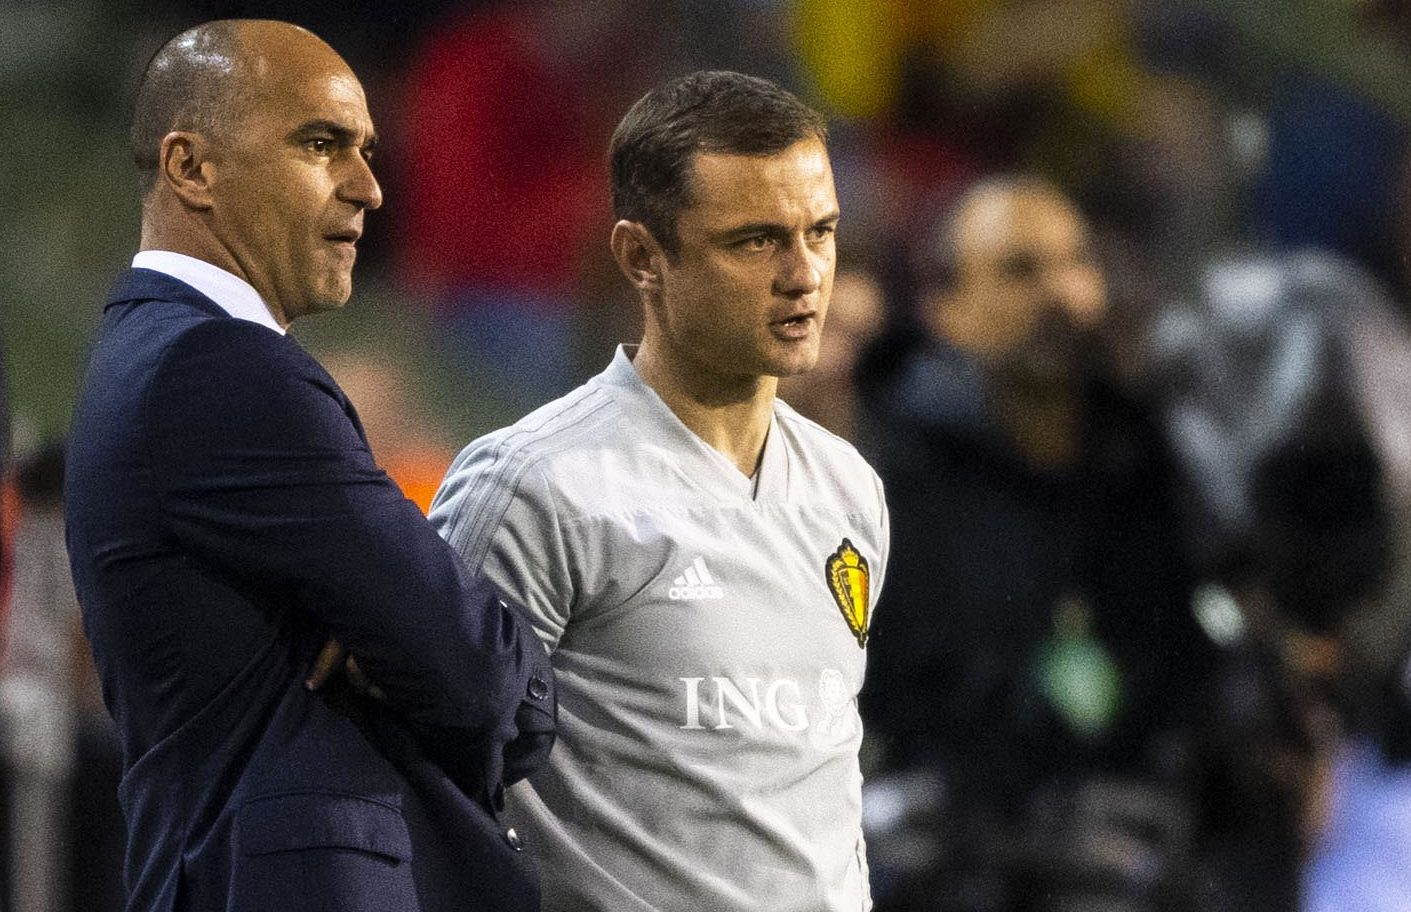 Shaun Maloney and Roberto Martinez are now working together for Belgium, some 20 years after they arrived on the Scottish football scene